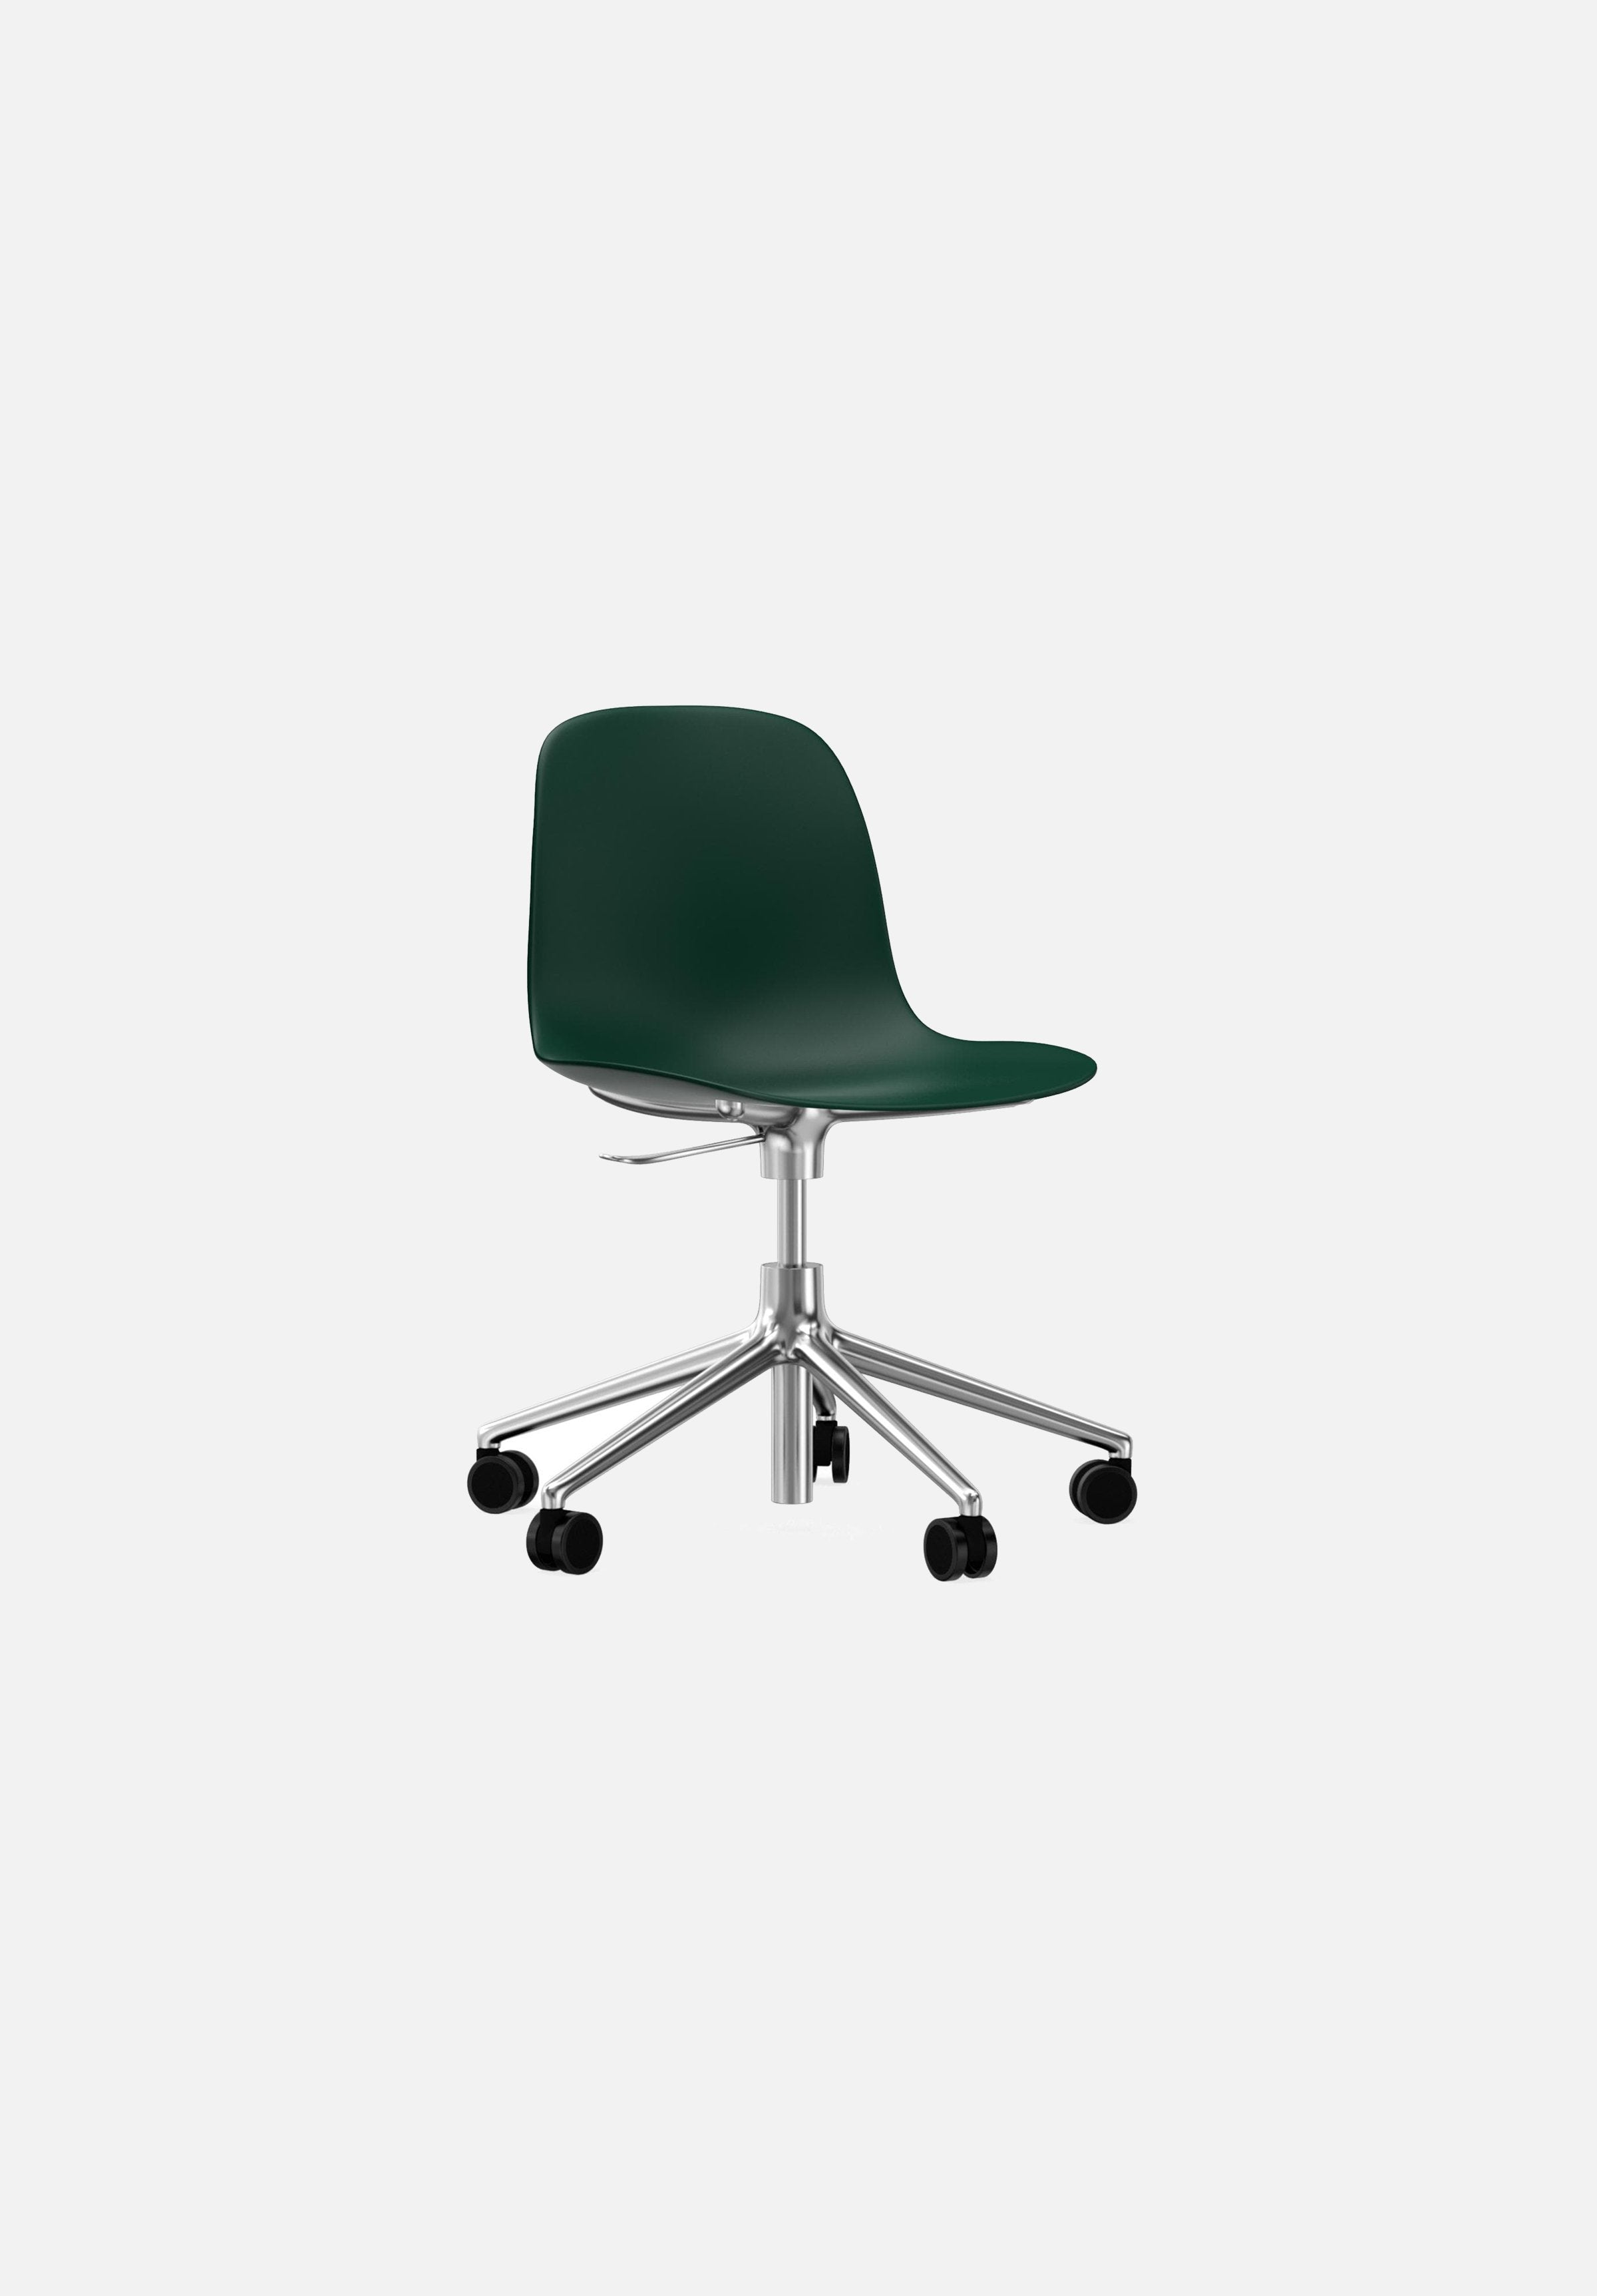 Form Chair — Swivel Gaslift-Simon Legald-Normann Copenhagen-Green-Polished Aluminum-Average